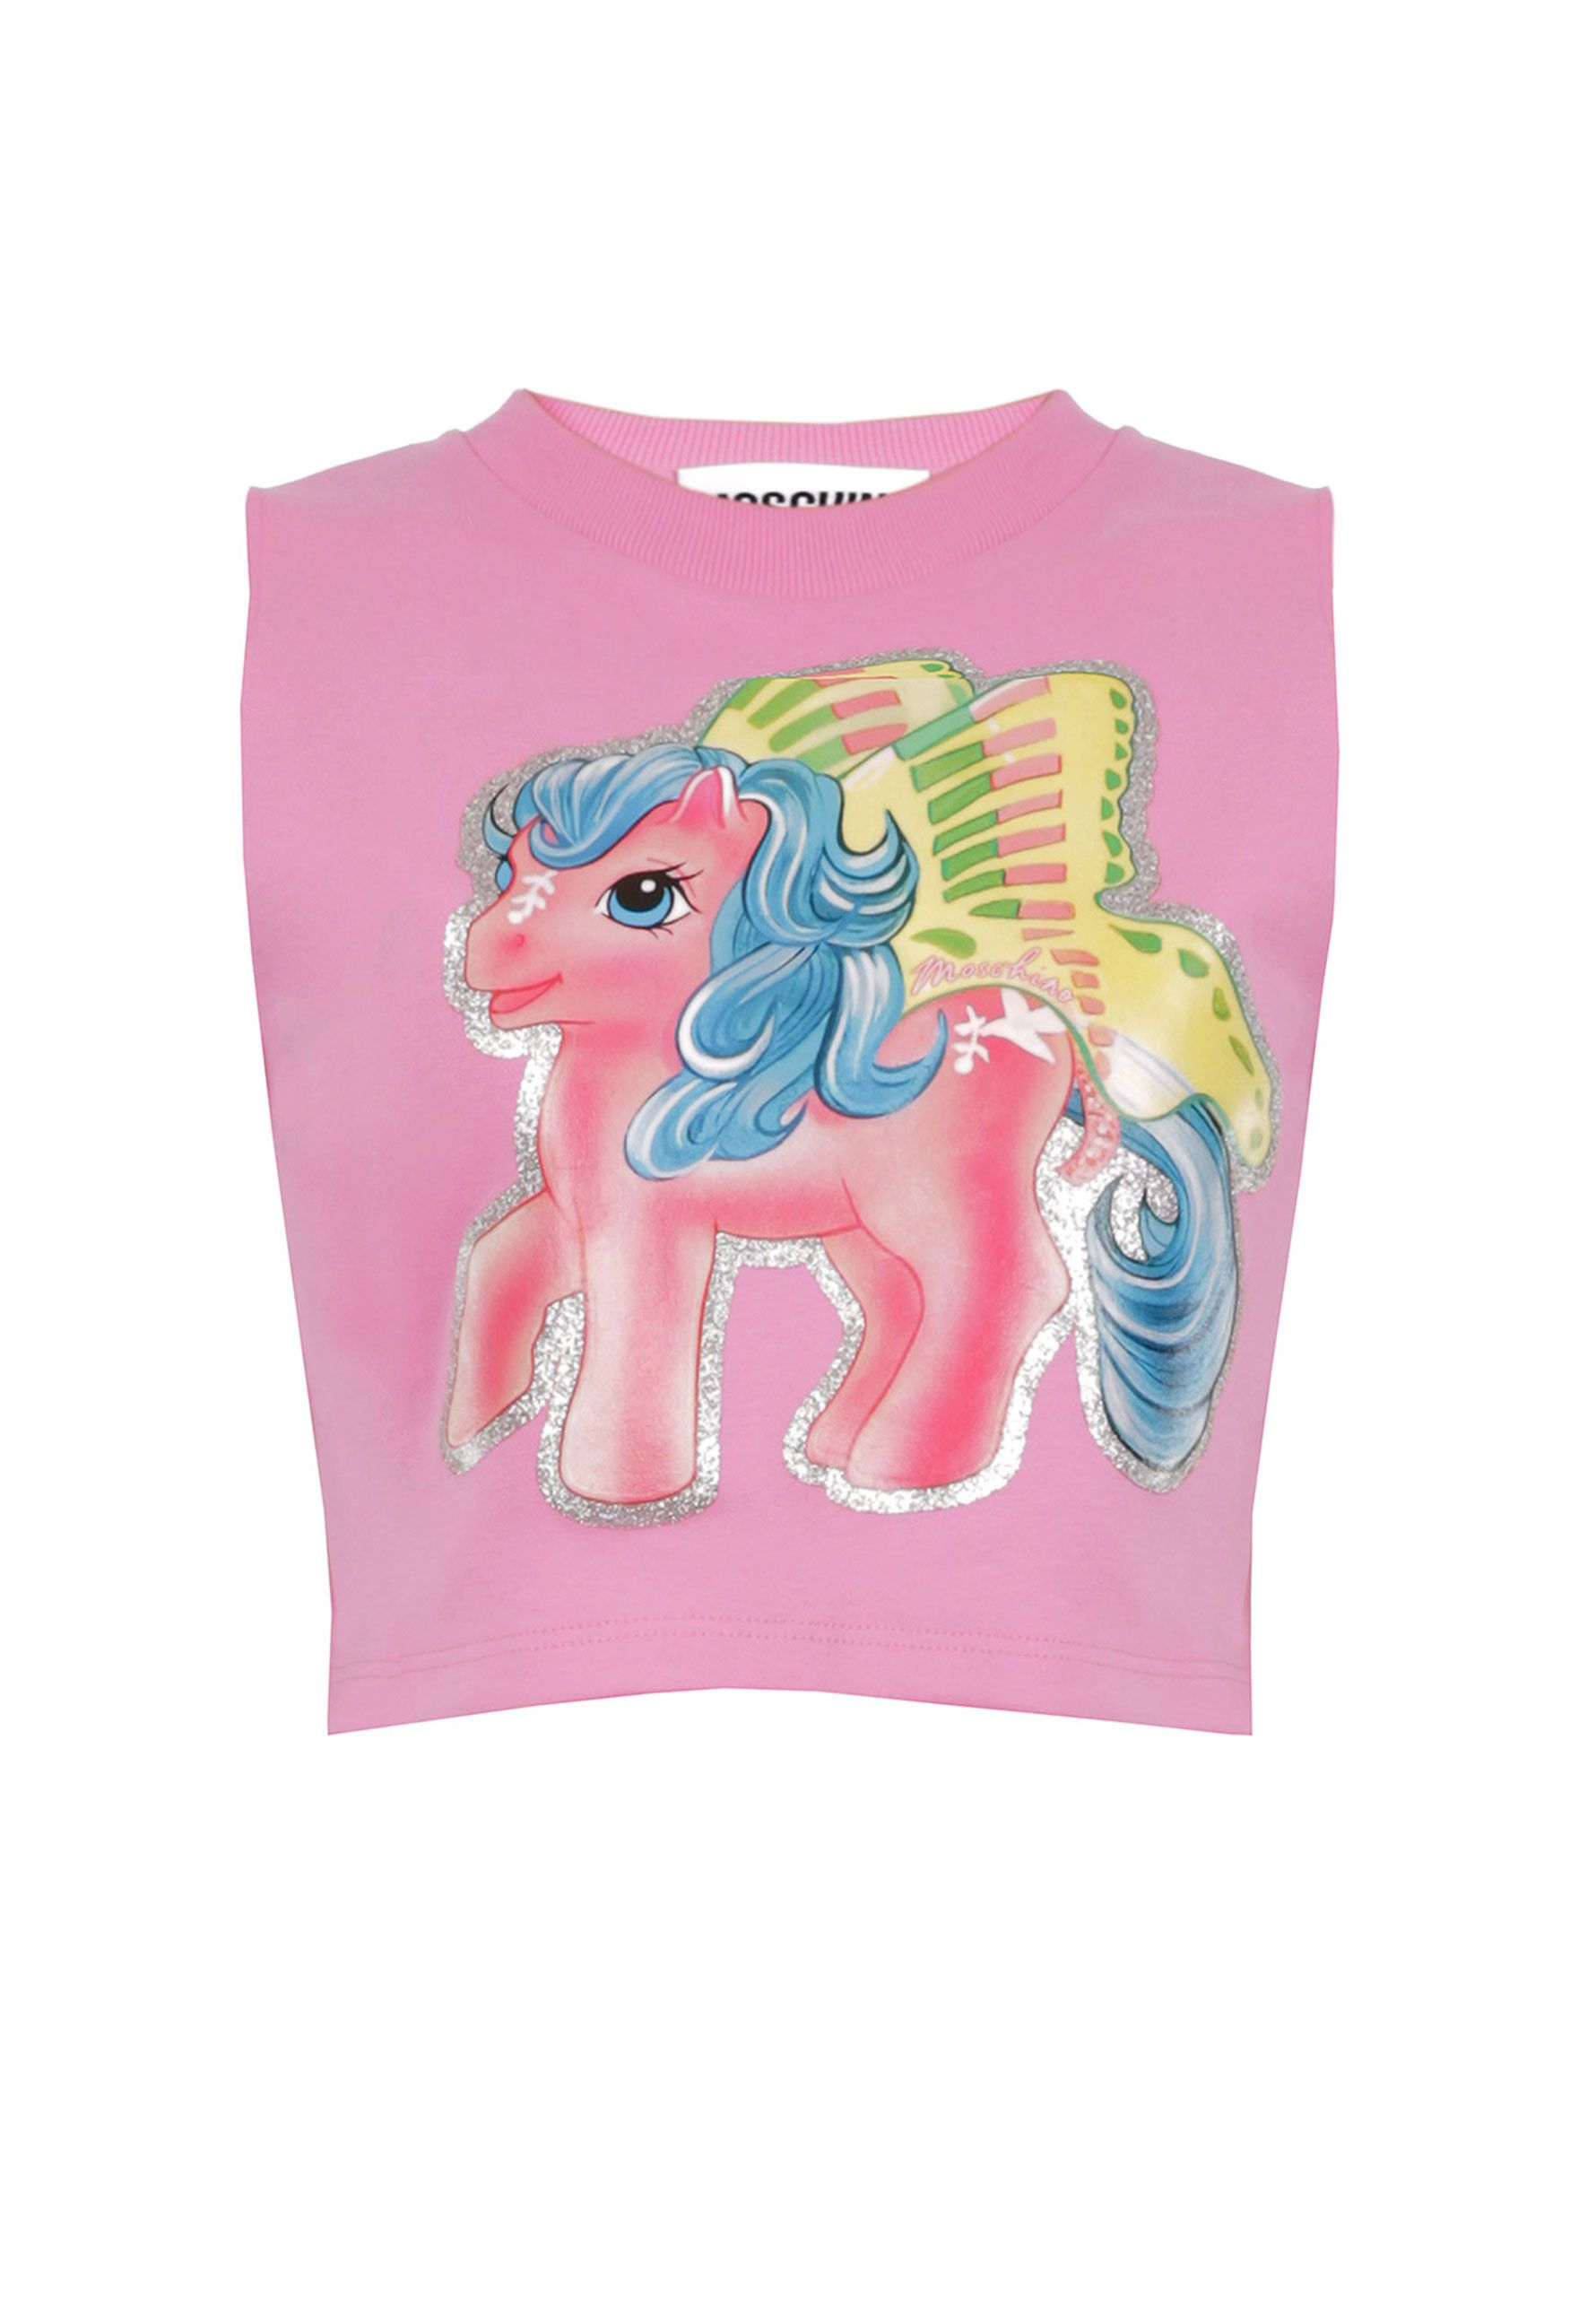 9175b503e0 Moschino My Little Pony Crop Top in pink. Moschino's exclusive My Little  Pony graphic decorates